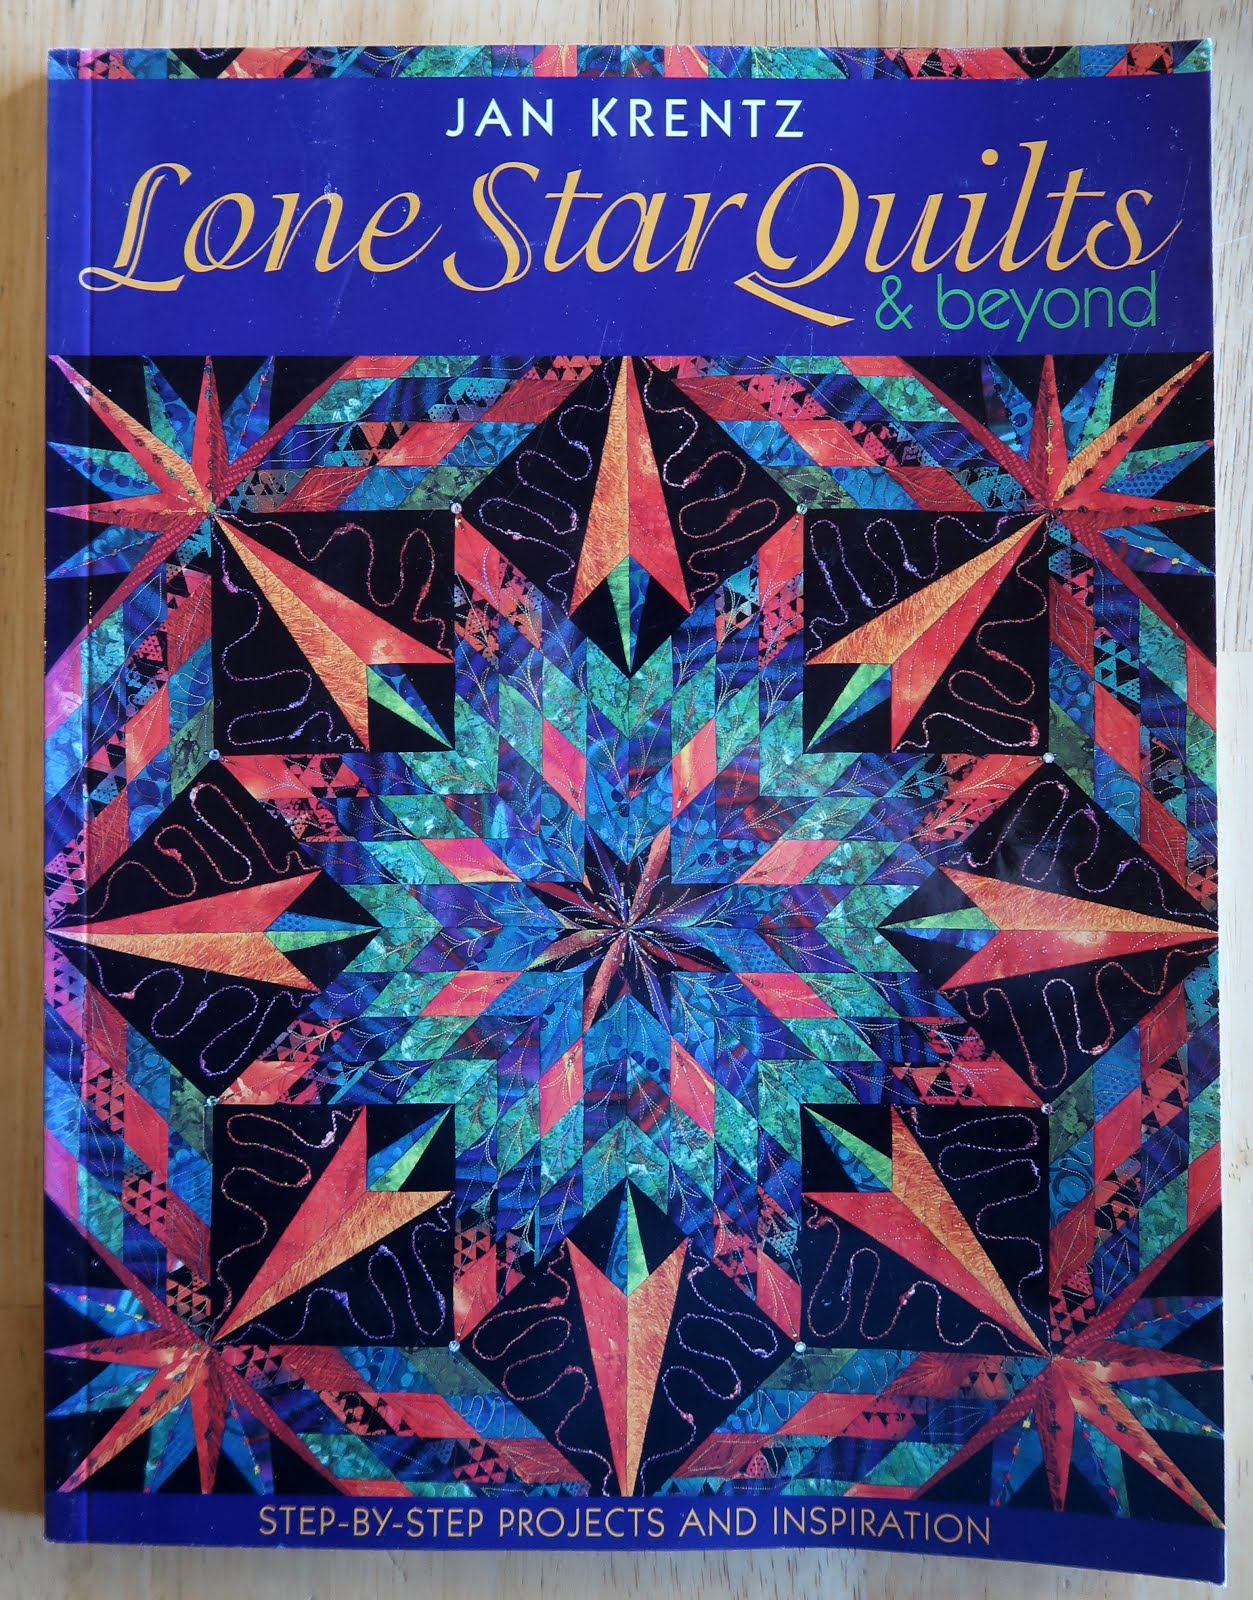 Lone Star Quilts by Jan Krentz